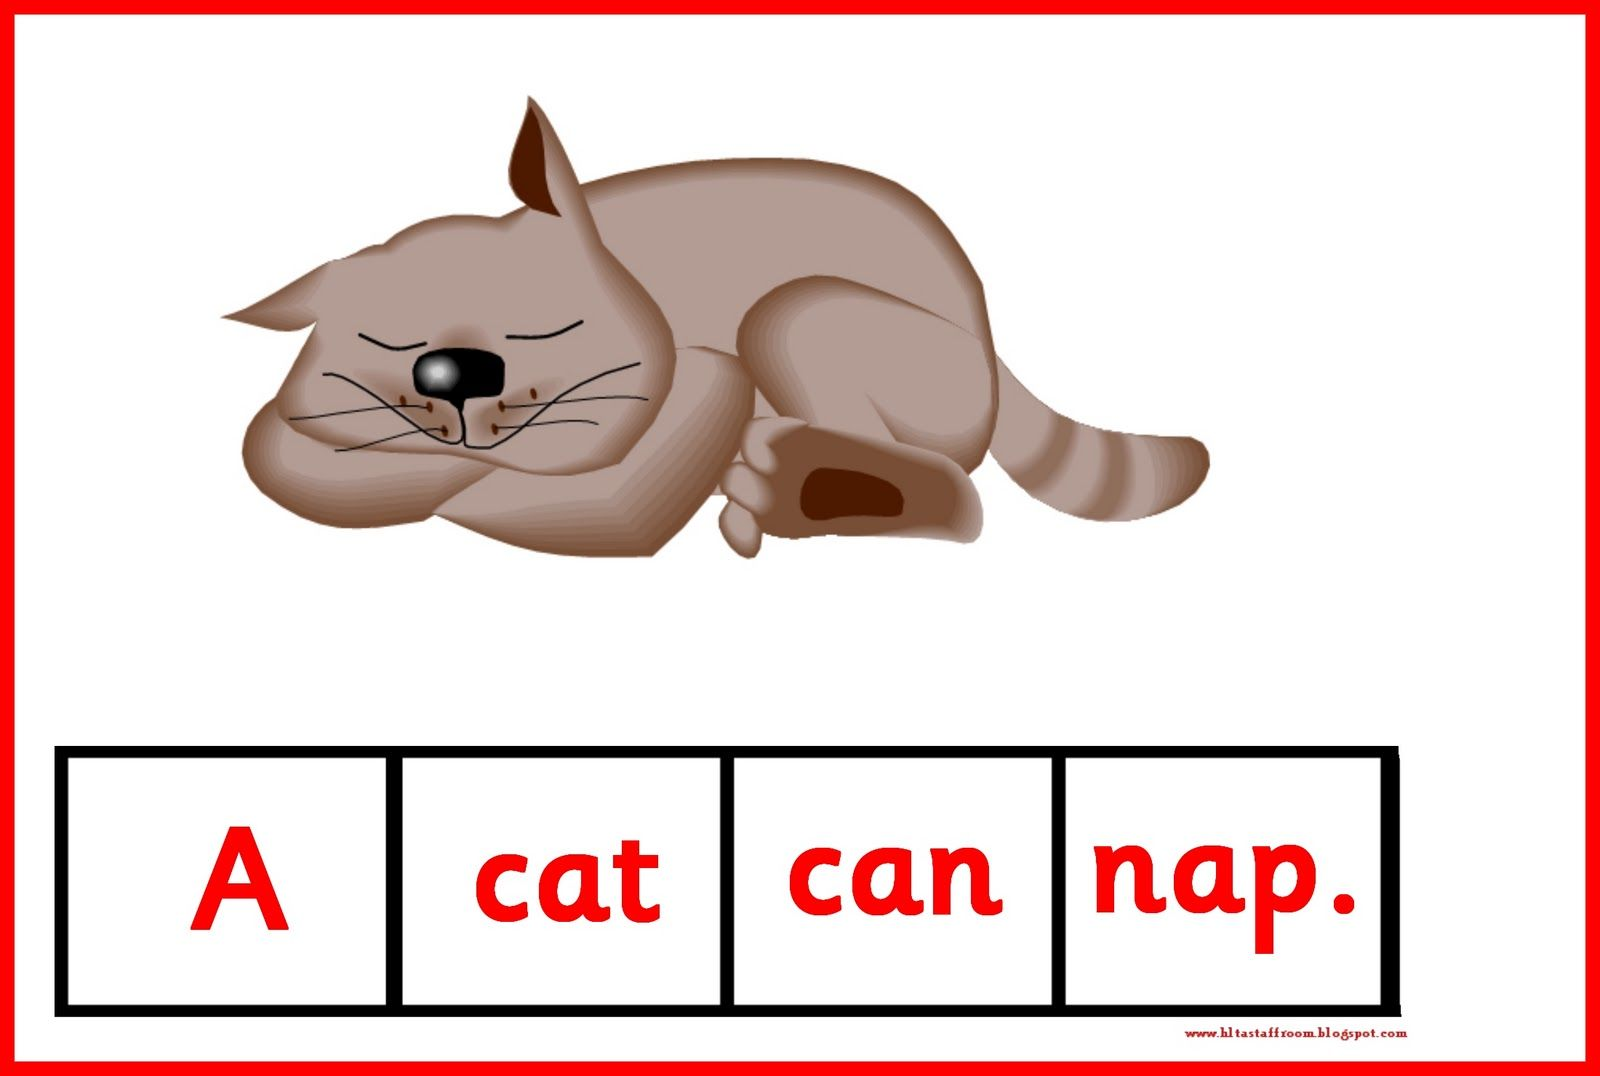 Letters and Sounds captions phase 2-3 | Jolly phonics, Phonics activities,  Jolly phonics activities